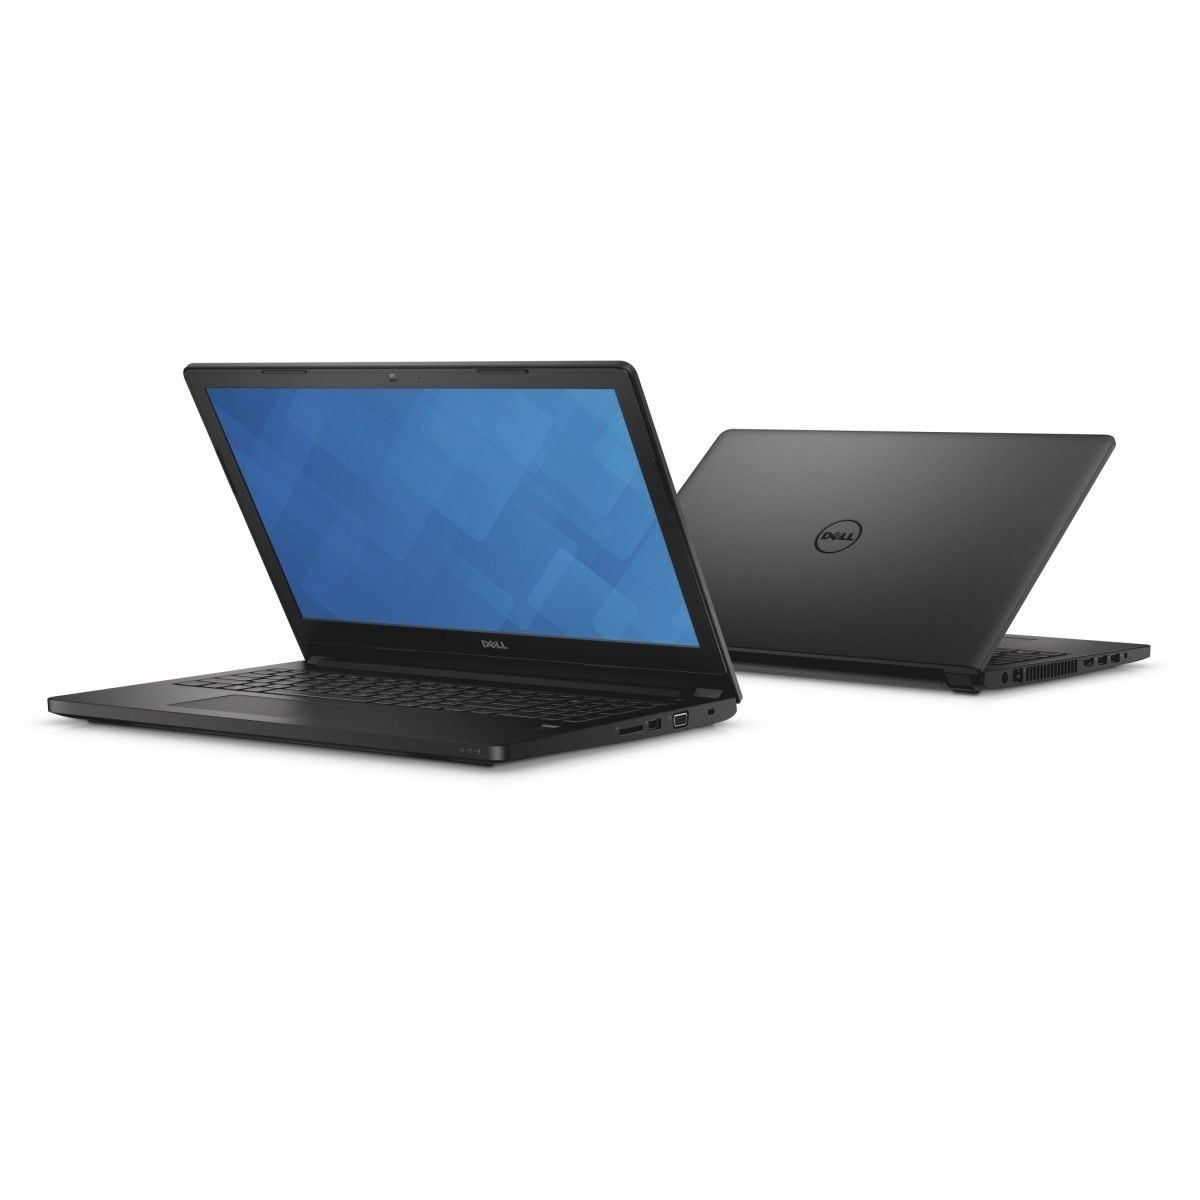 Dell Latitude 3560 Win7/10Pro(64-bit win10, nosnik) i5-5200U/500GB/4GB/HD5500/15.6'HD/KB-Backlit/66WHR/3Y NBD